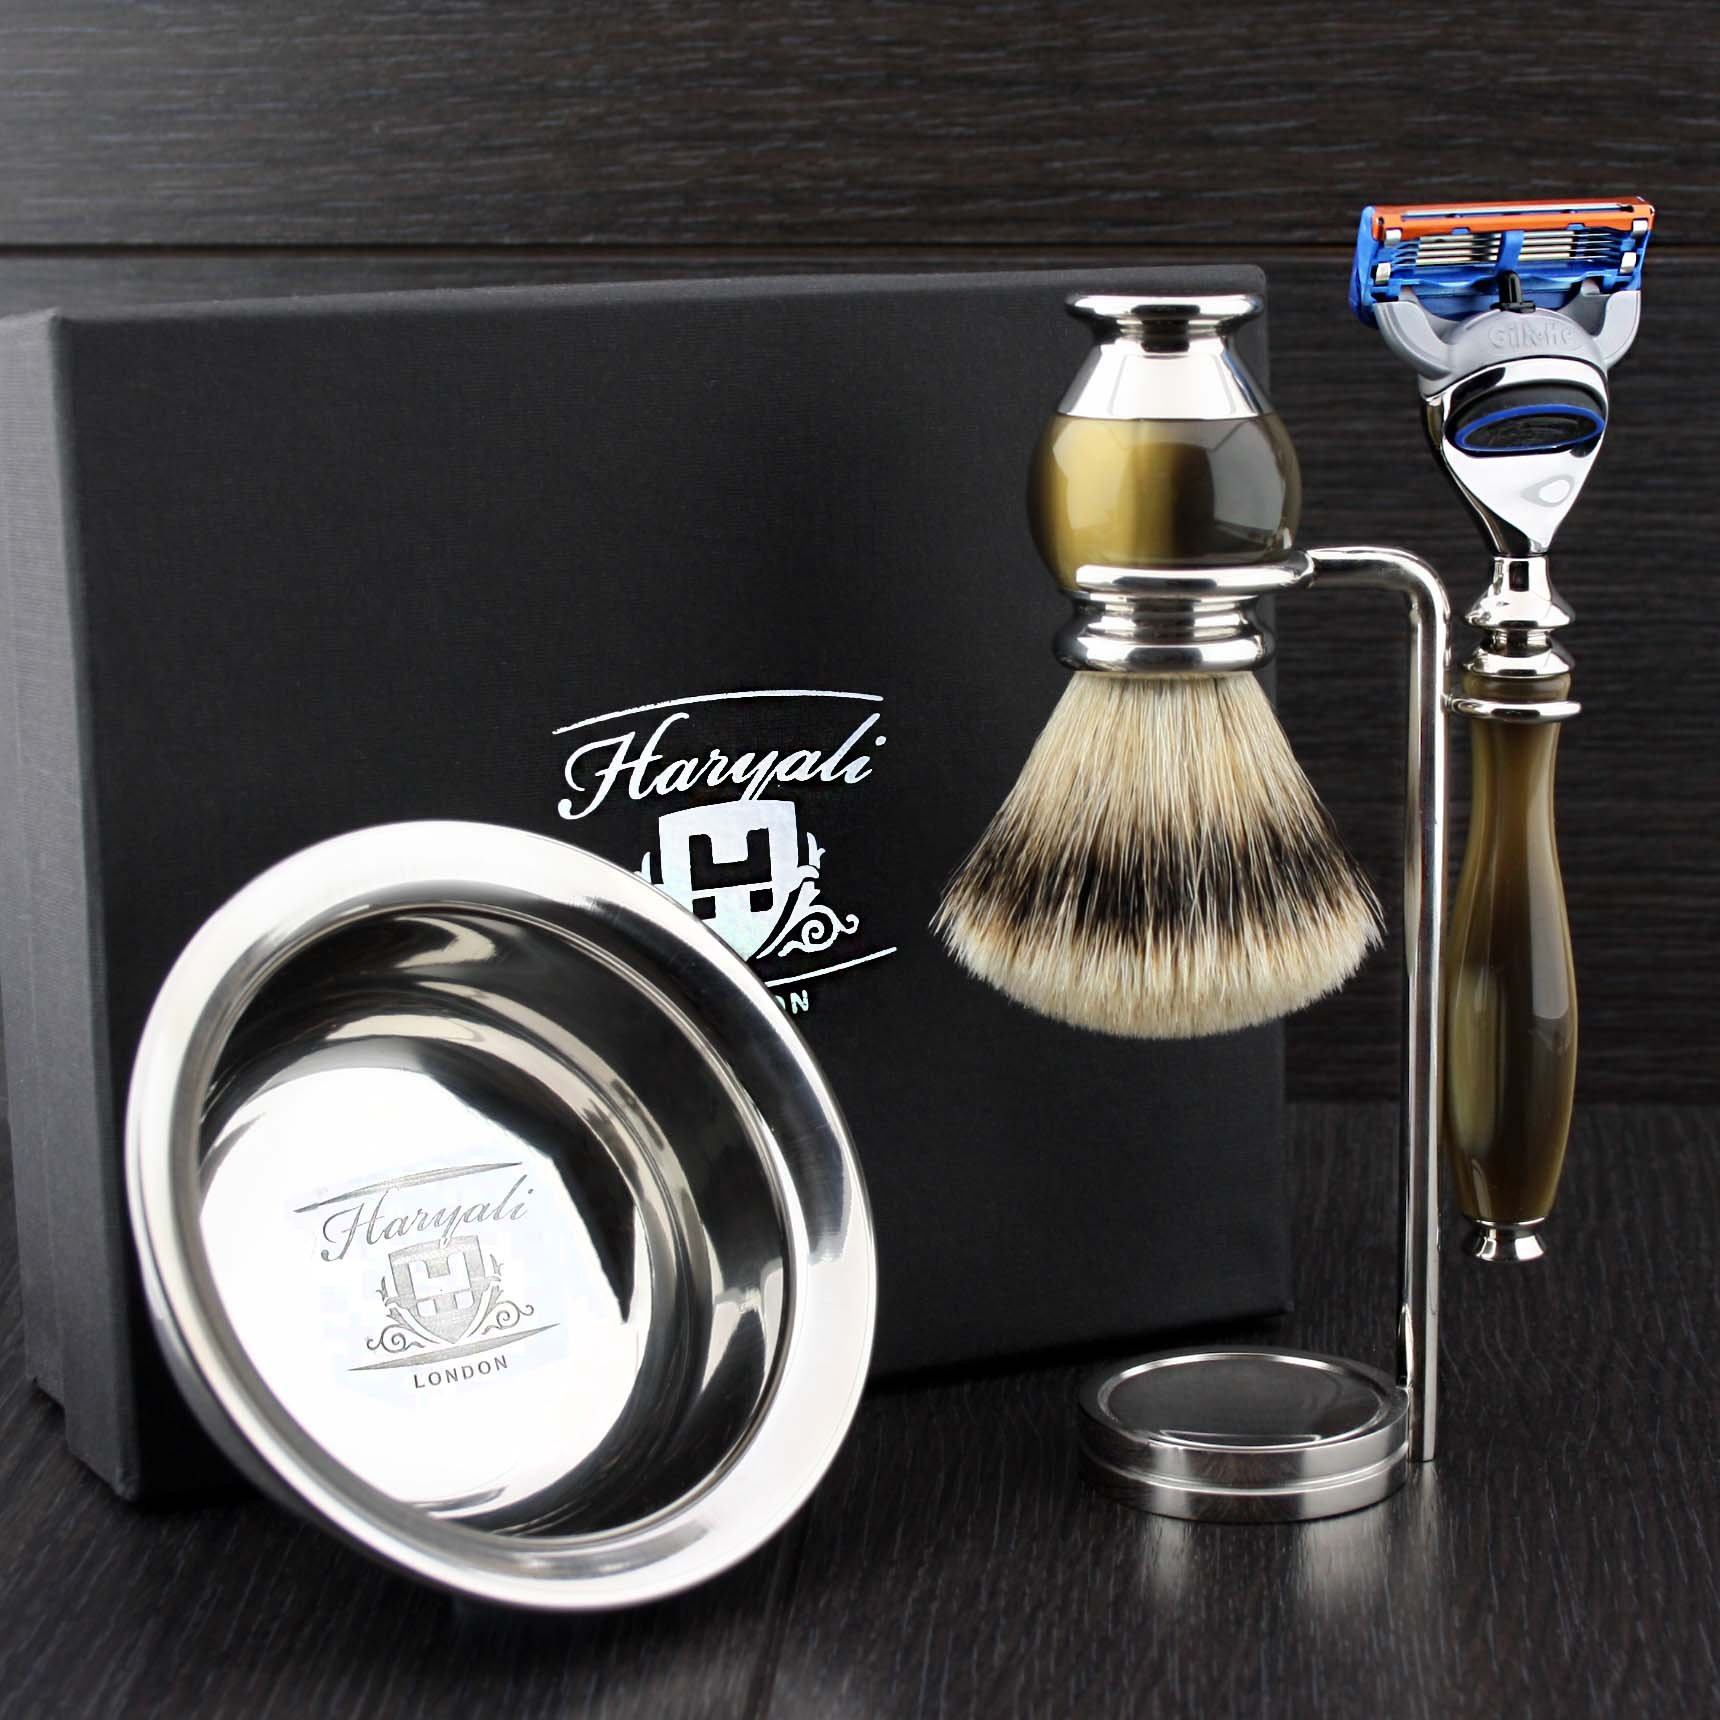 Simulated Horn and Nickel 4 Pieces Men's Shaving Set With Gillette Fusion (Replaceable Head) Razor. Newly Designed By HARYALI LONDON